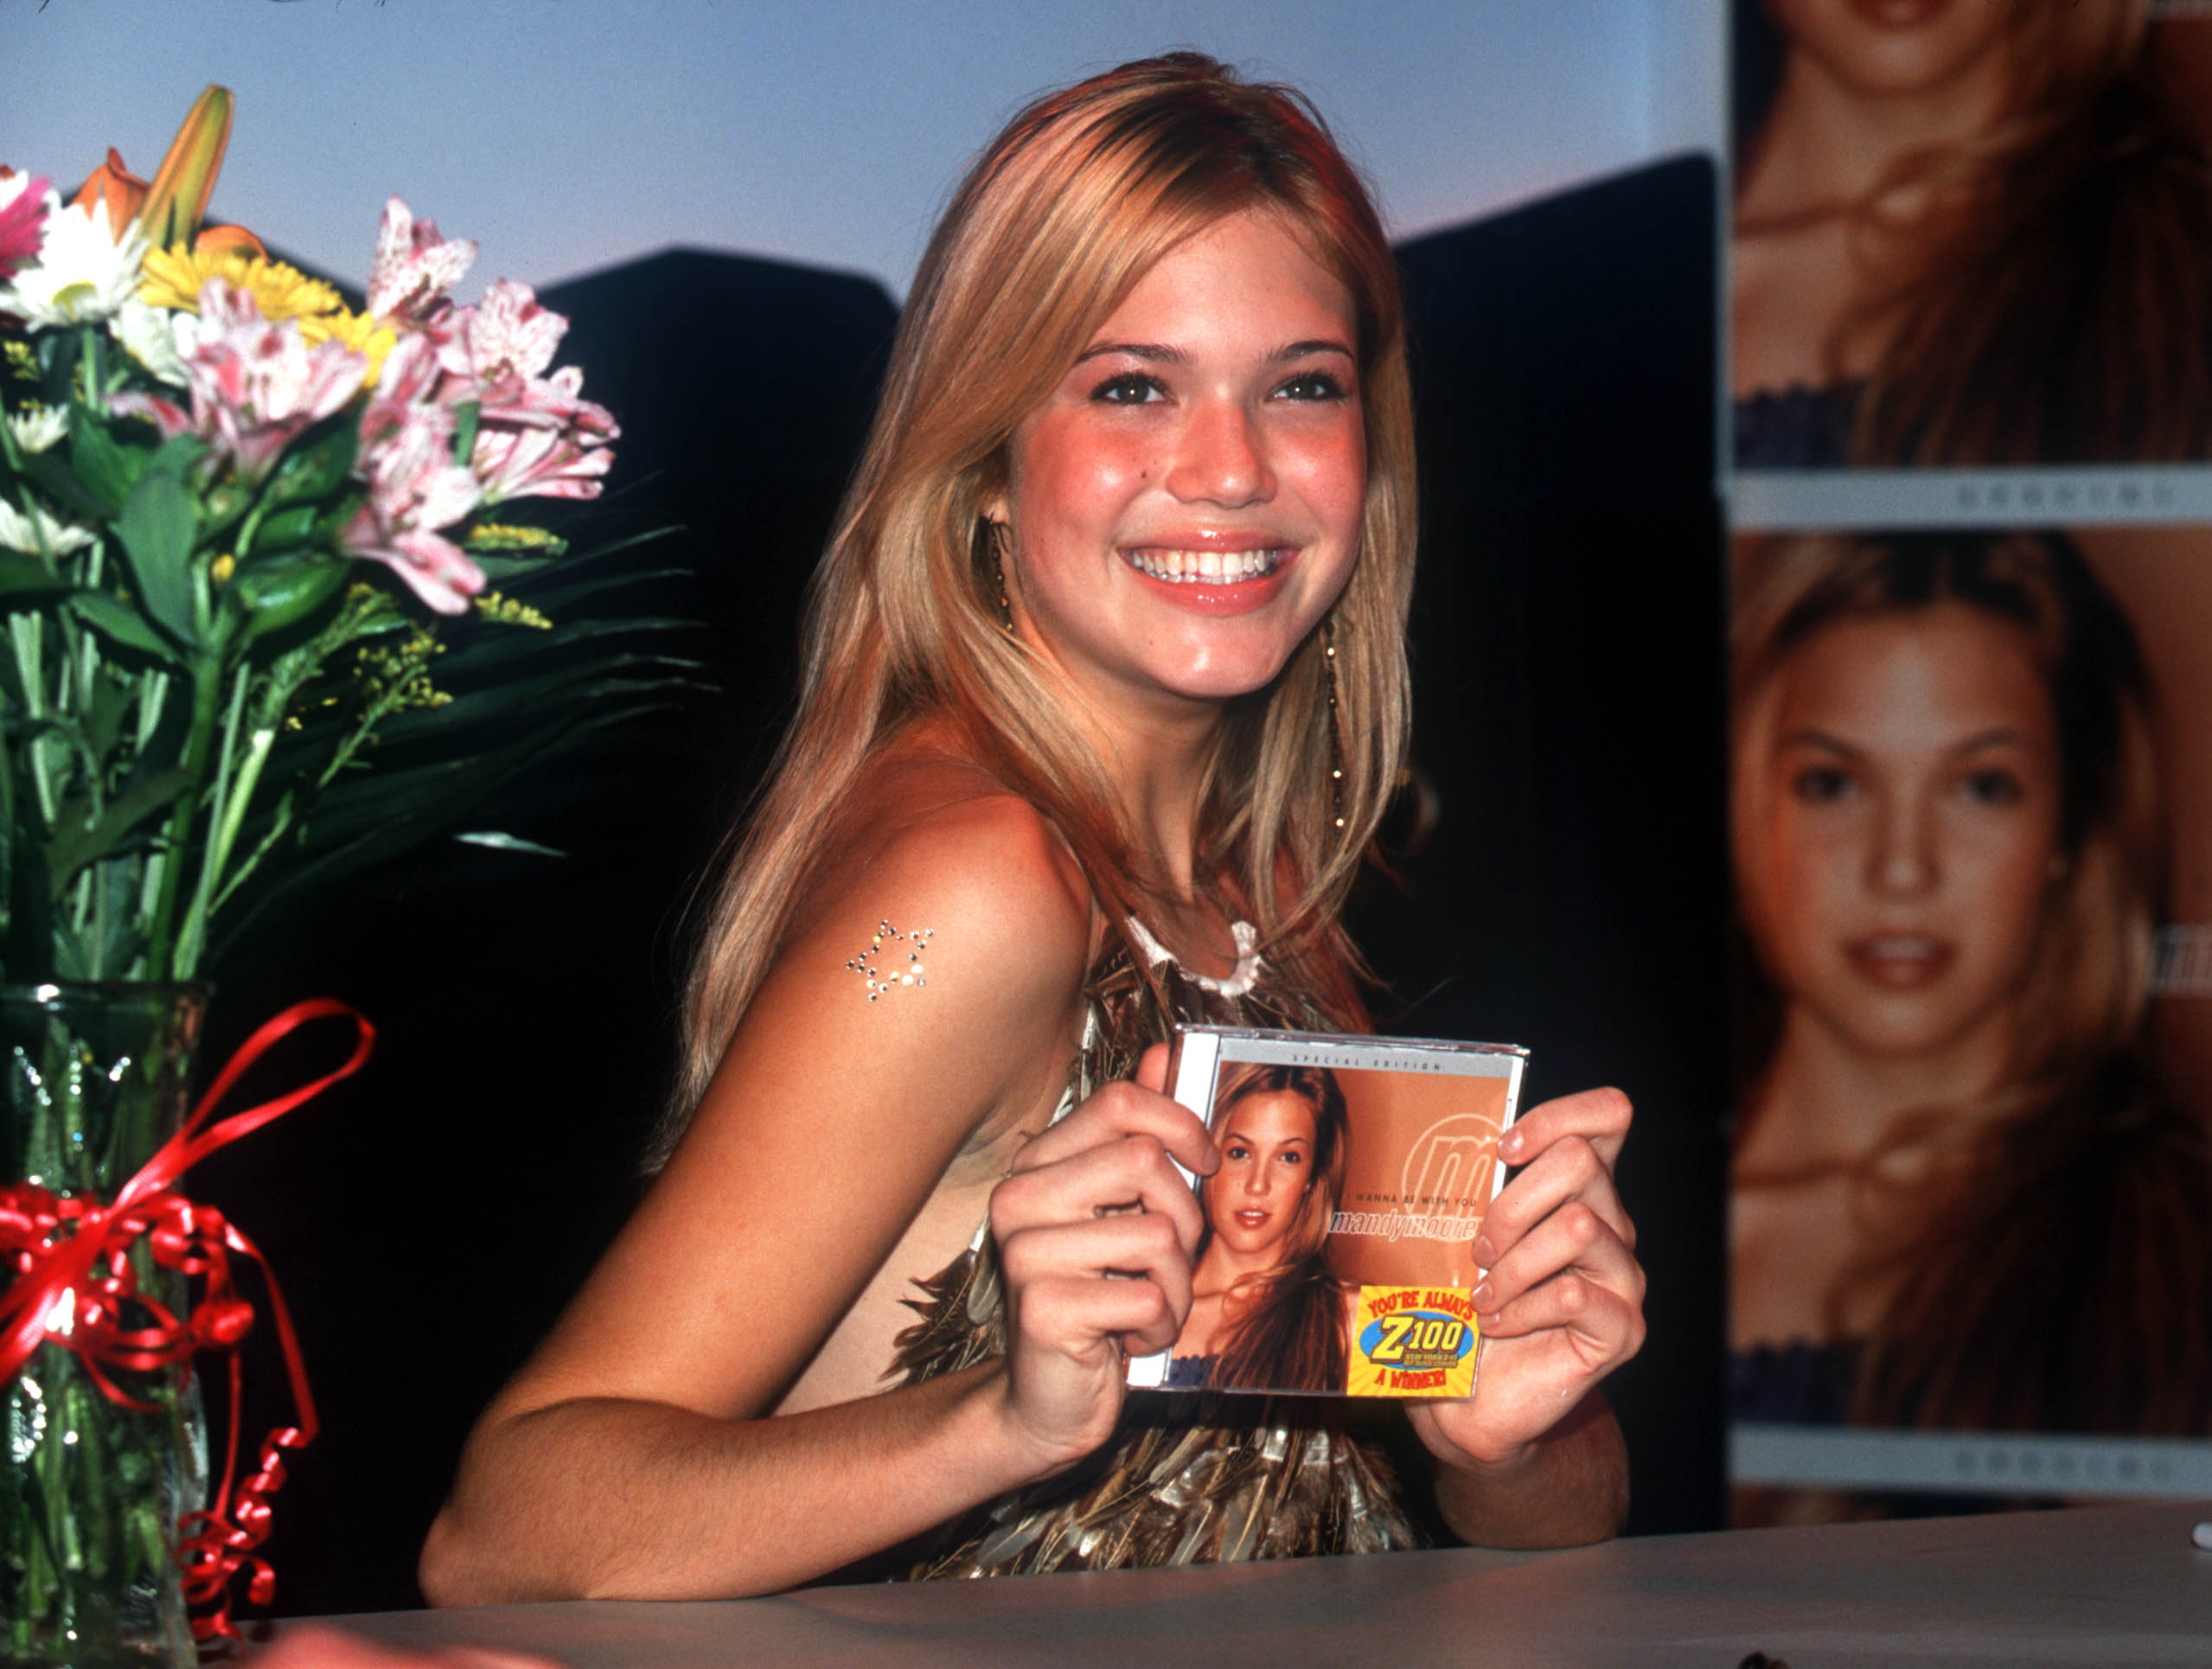 Mandy Moore launches her new CD in New York City